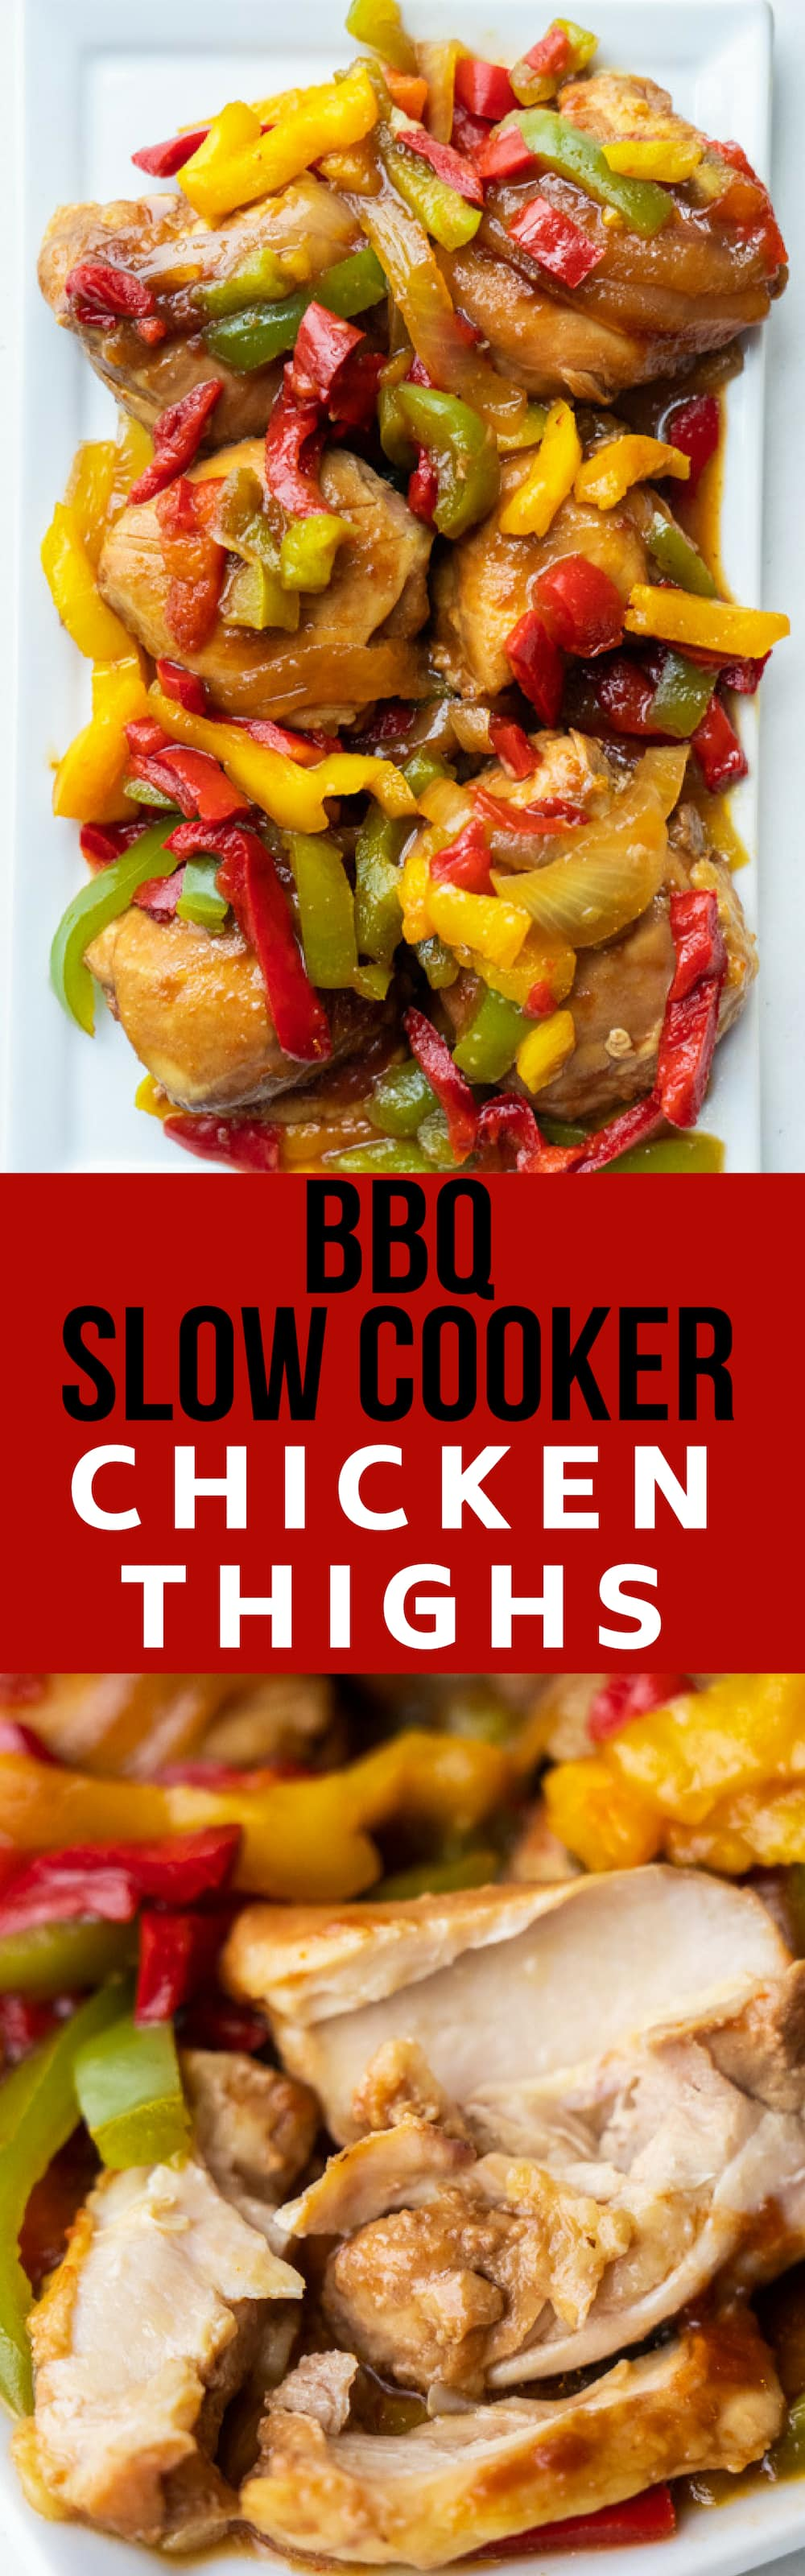 Bbq Slow Cooker Chicken Thighs Ready In Only 2 Hours